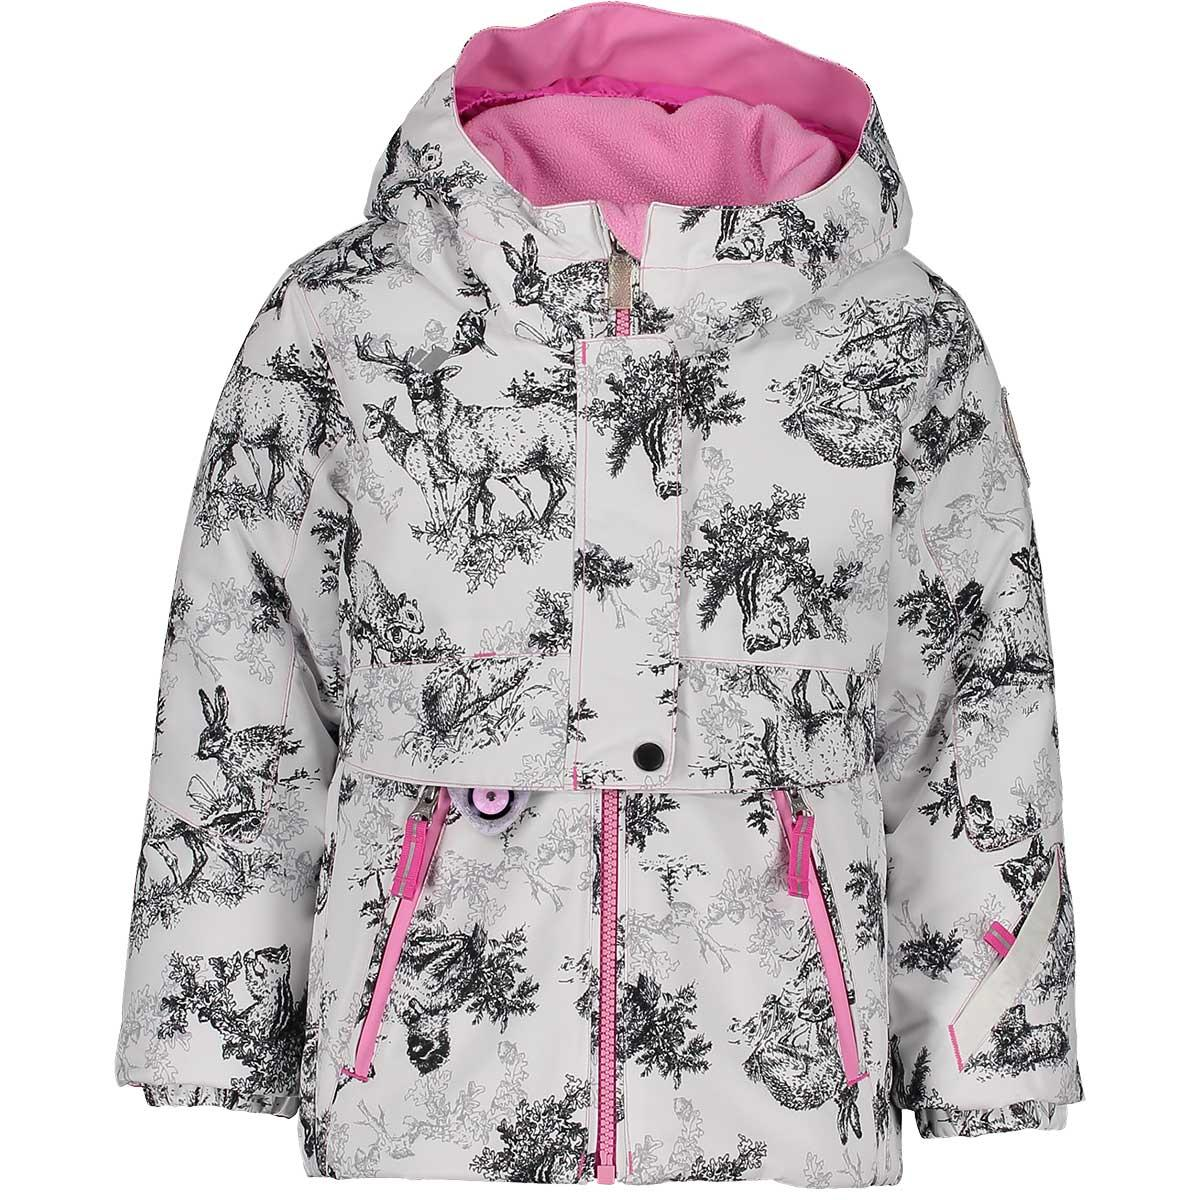 Obermeyer girls' Stormy Jacket in Little Ones front view